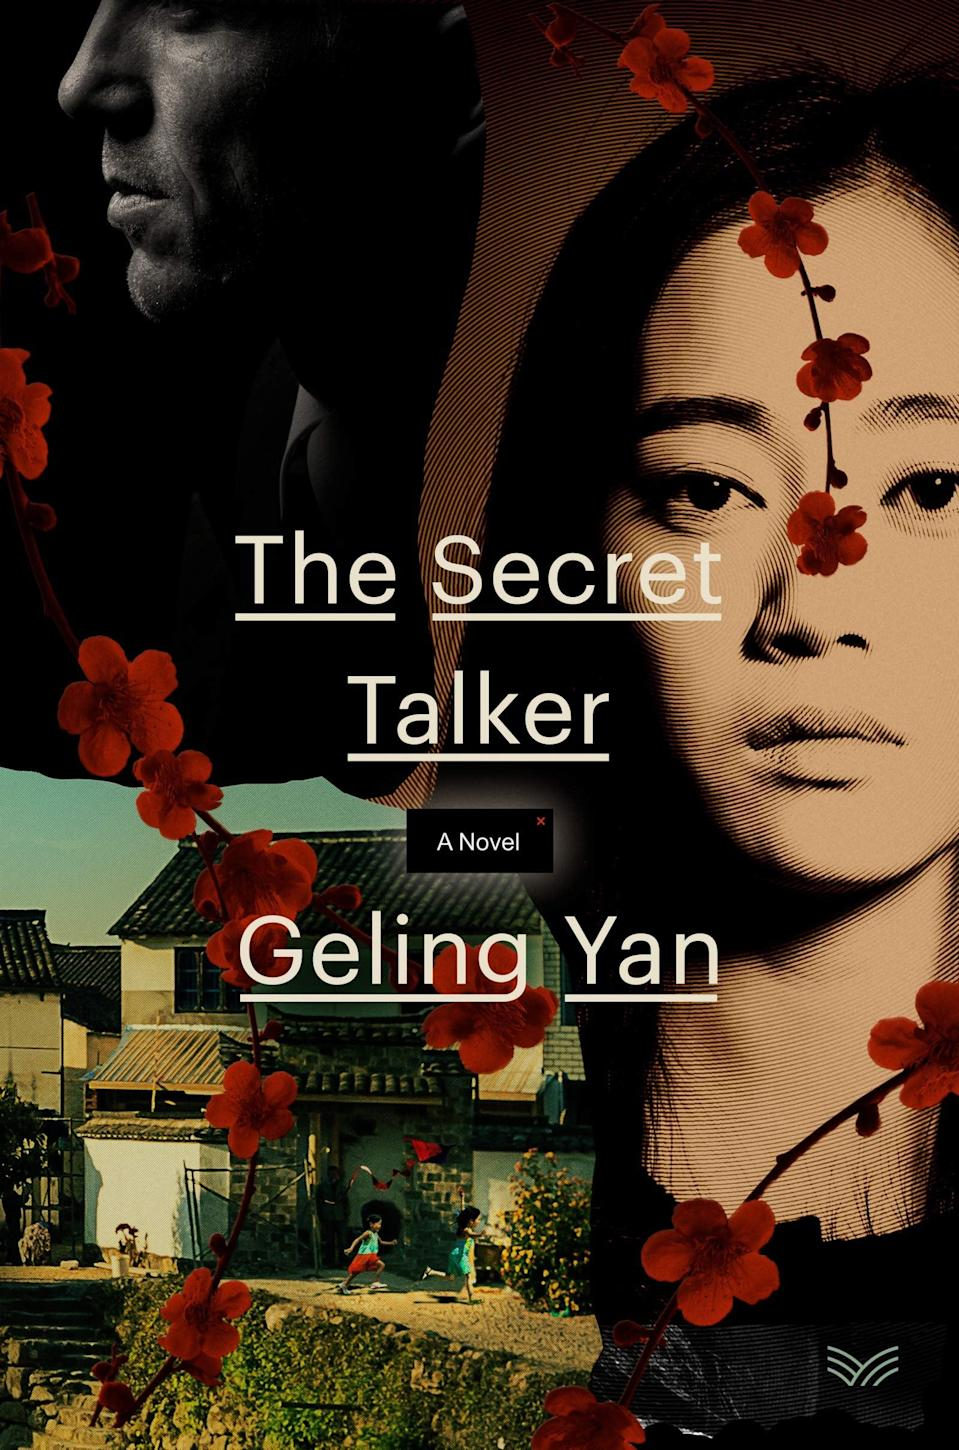 <p>An emotional affair leads to a dangerous investigation in <span><strong>The Secret Talker</strong></span> by Geling Yan. From the outside, Hongmei's marriage to her husband, Glen, seems perfect, but the truth is they barely speak to each other anymore, which makes the flirty emails she's receiving from a secret admirer all the more alluring. However, once she begins spilling secrets about her time as a military intelligence officer in training in China, she realizes she has no choice but to track down the identity of the person she's been talking to online. </p> <p><em>Out May 4</em></p>